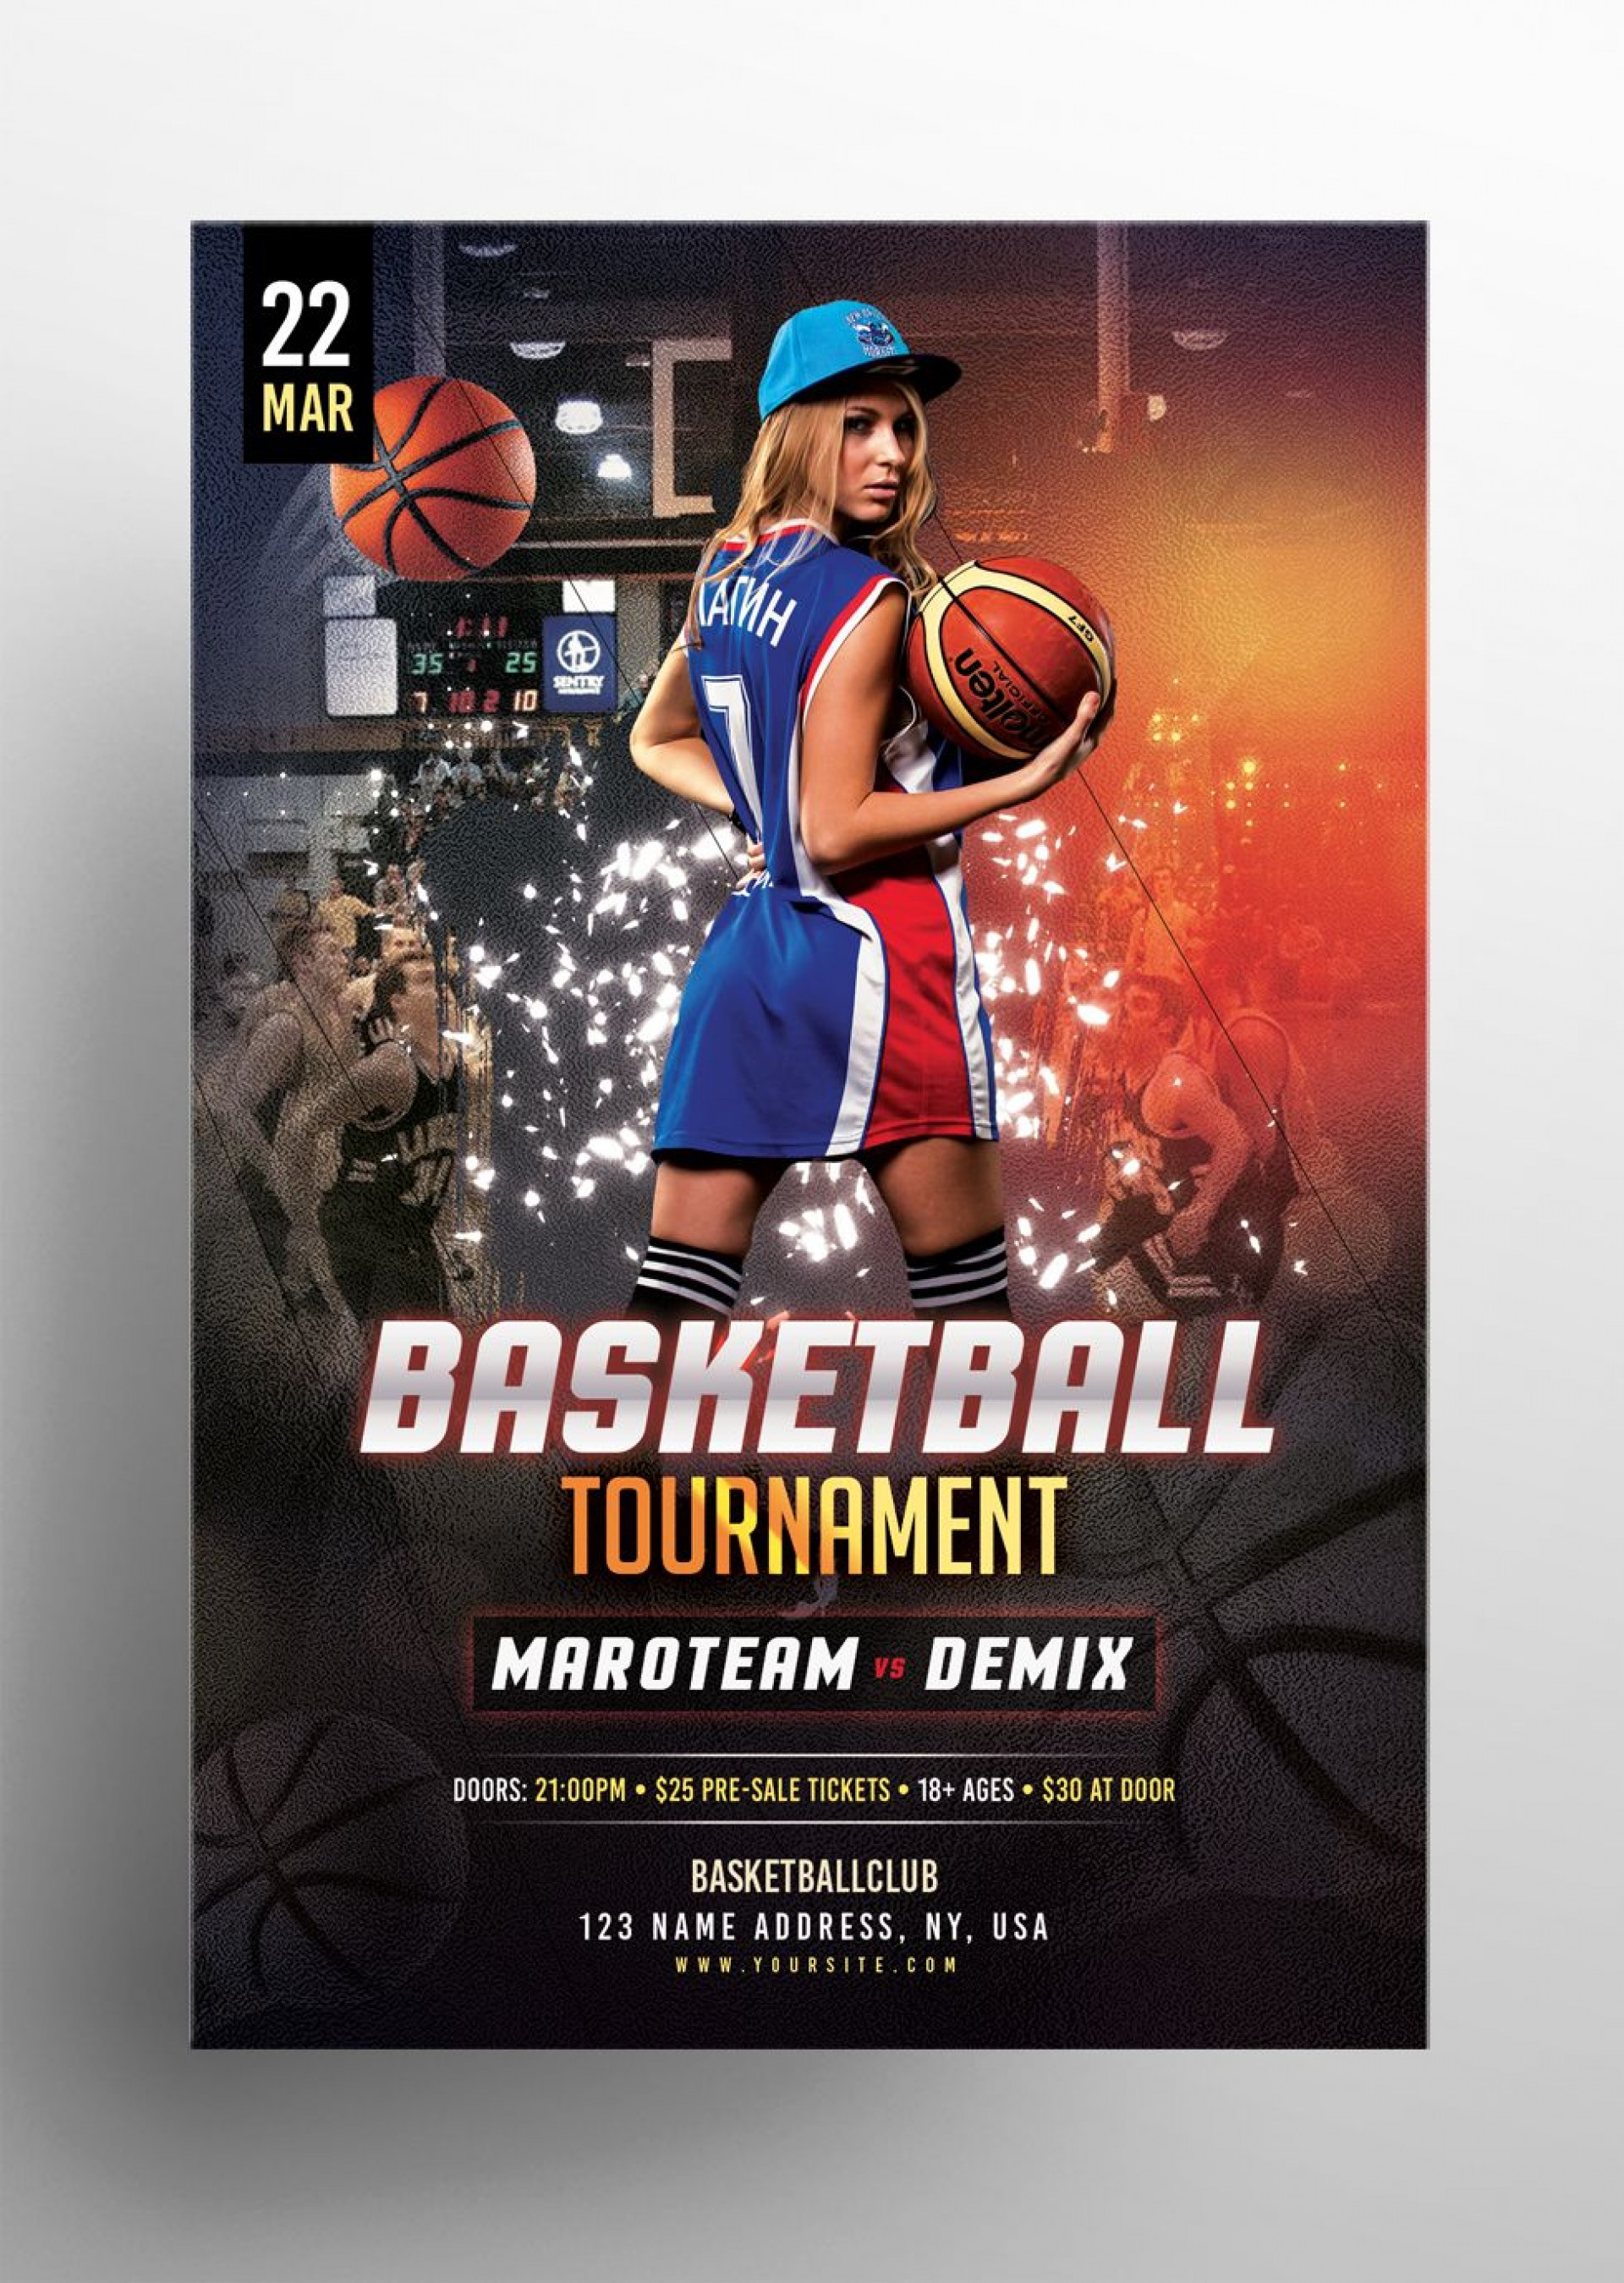 006 Top Basketball Tournament Flyer Template Photo  3 On Free1920